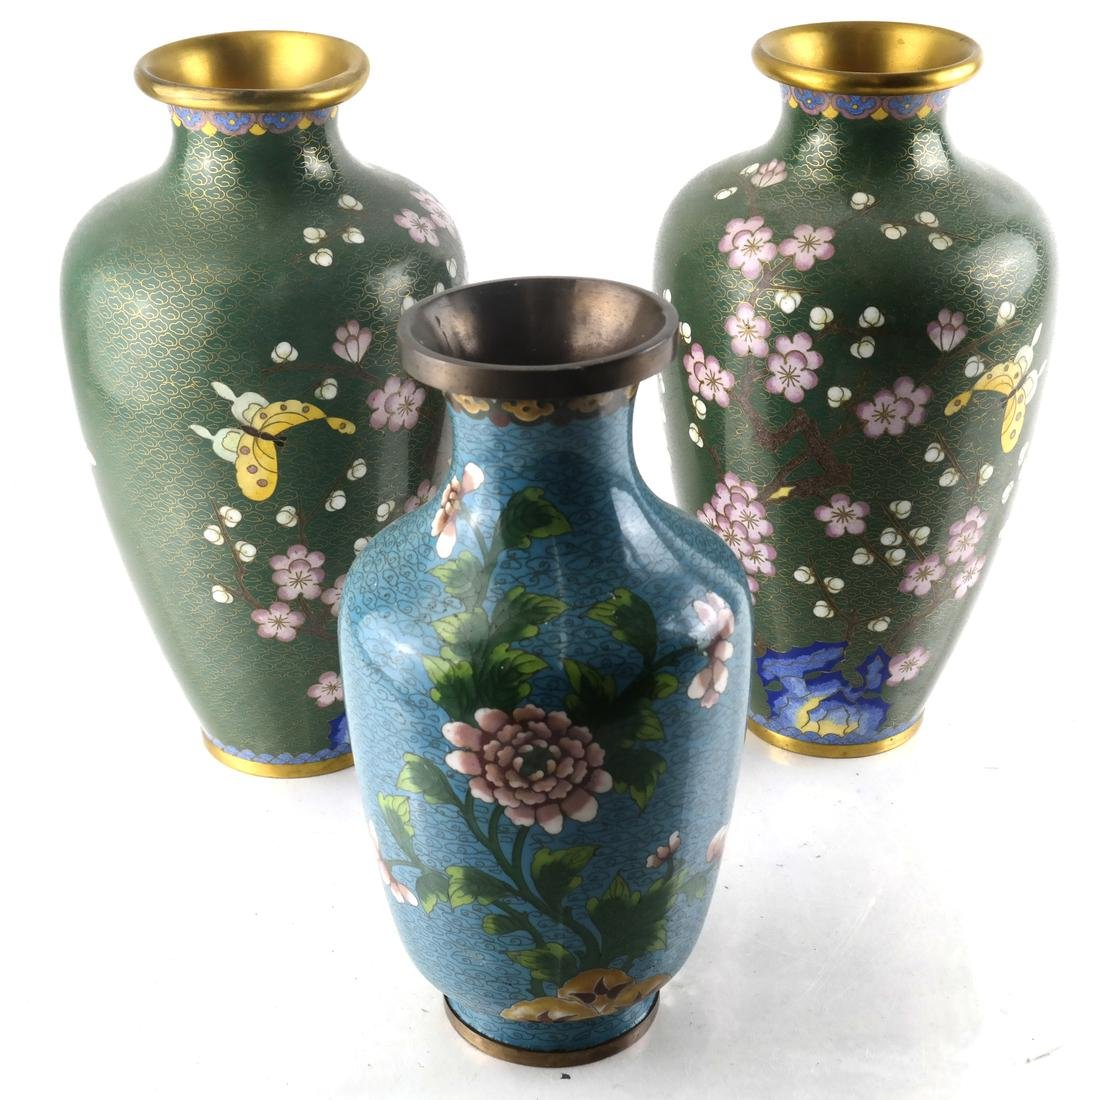 Three Enamel Vases and Pair of Japanese Cloisonne Vases